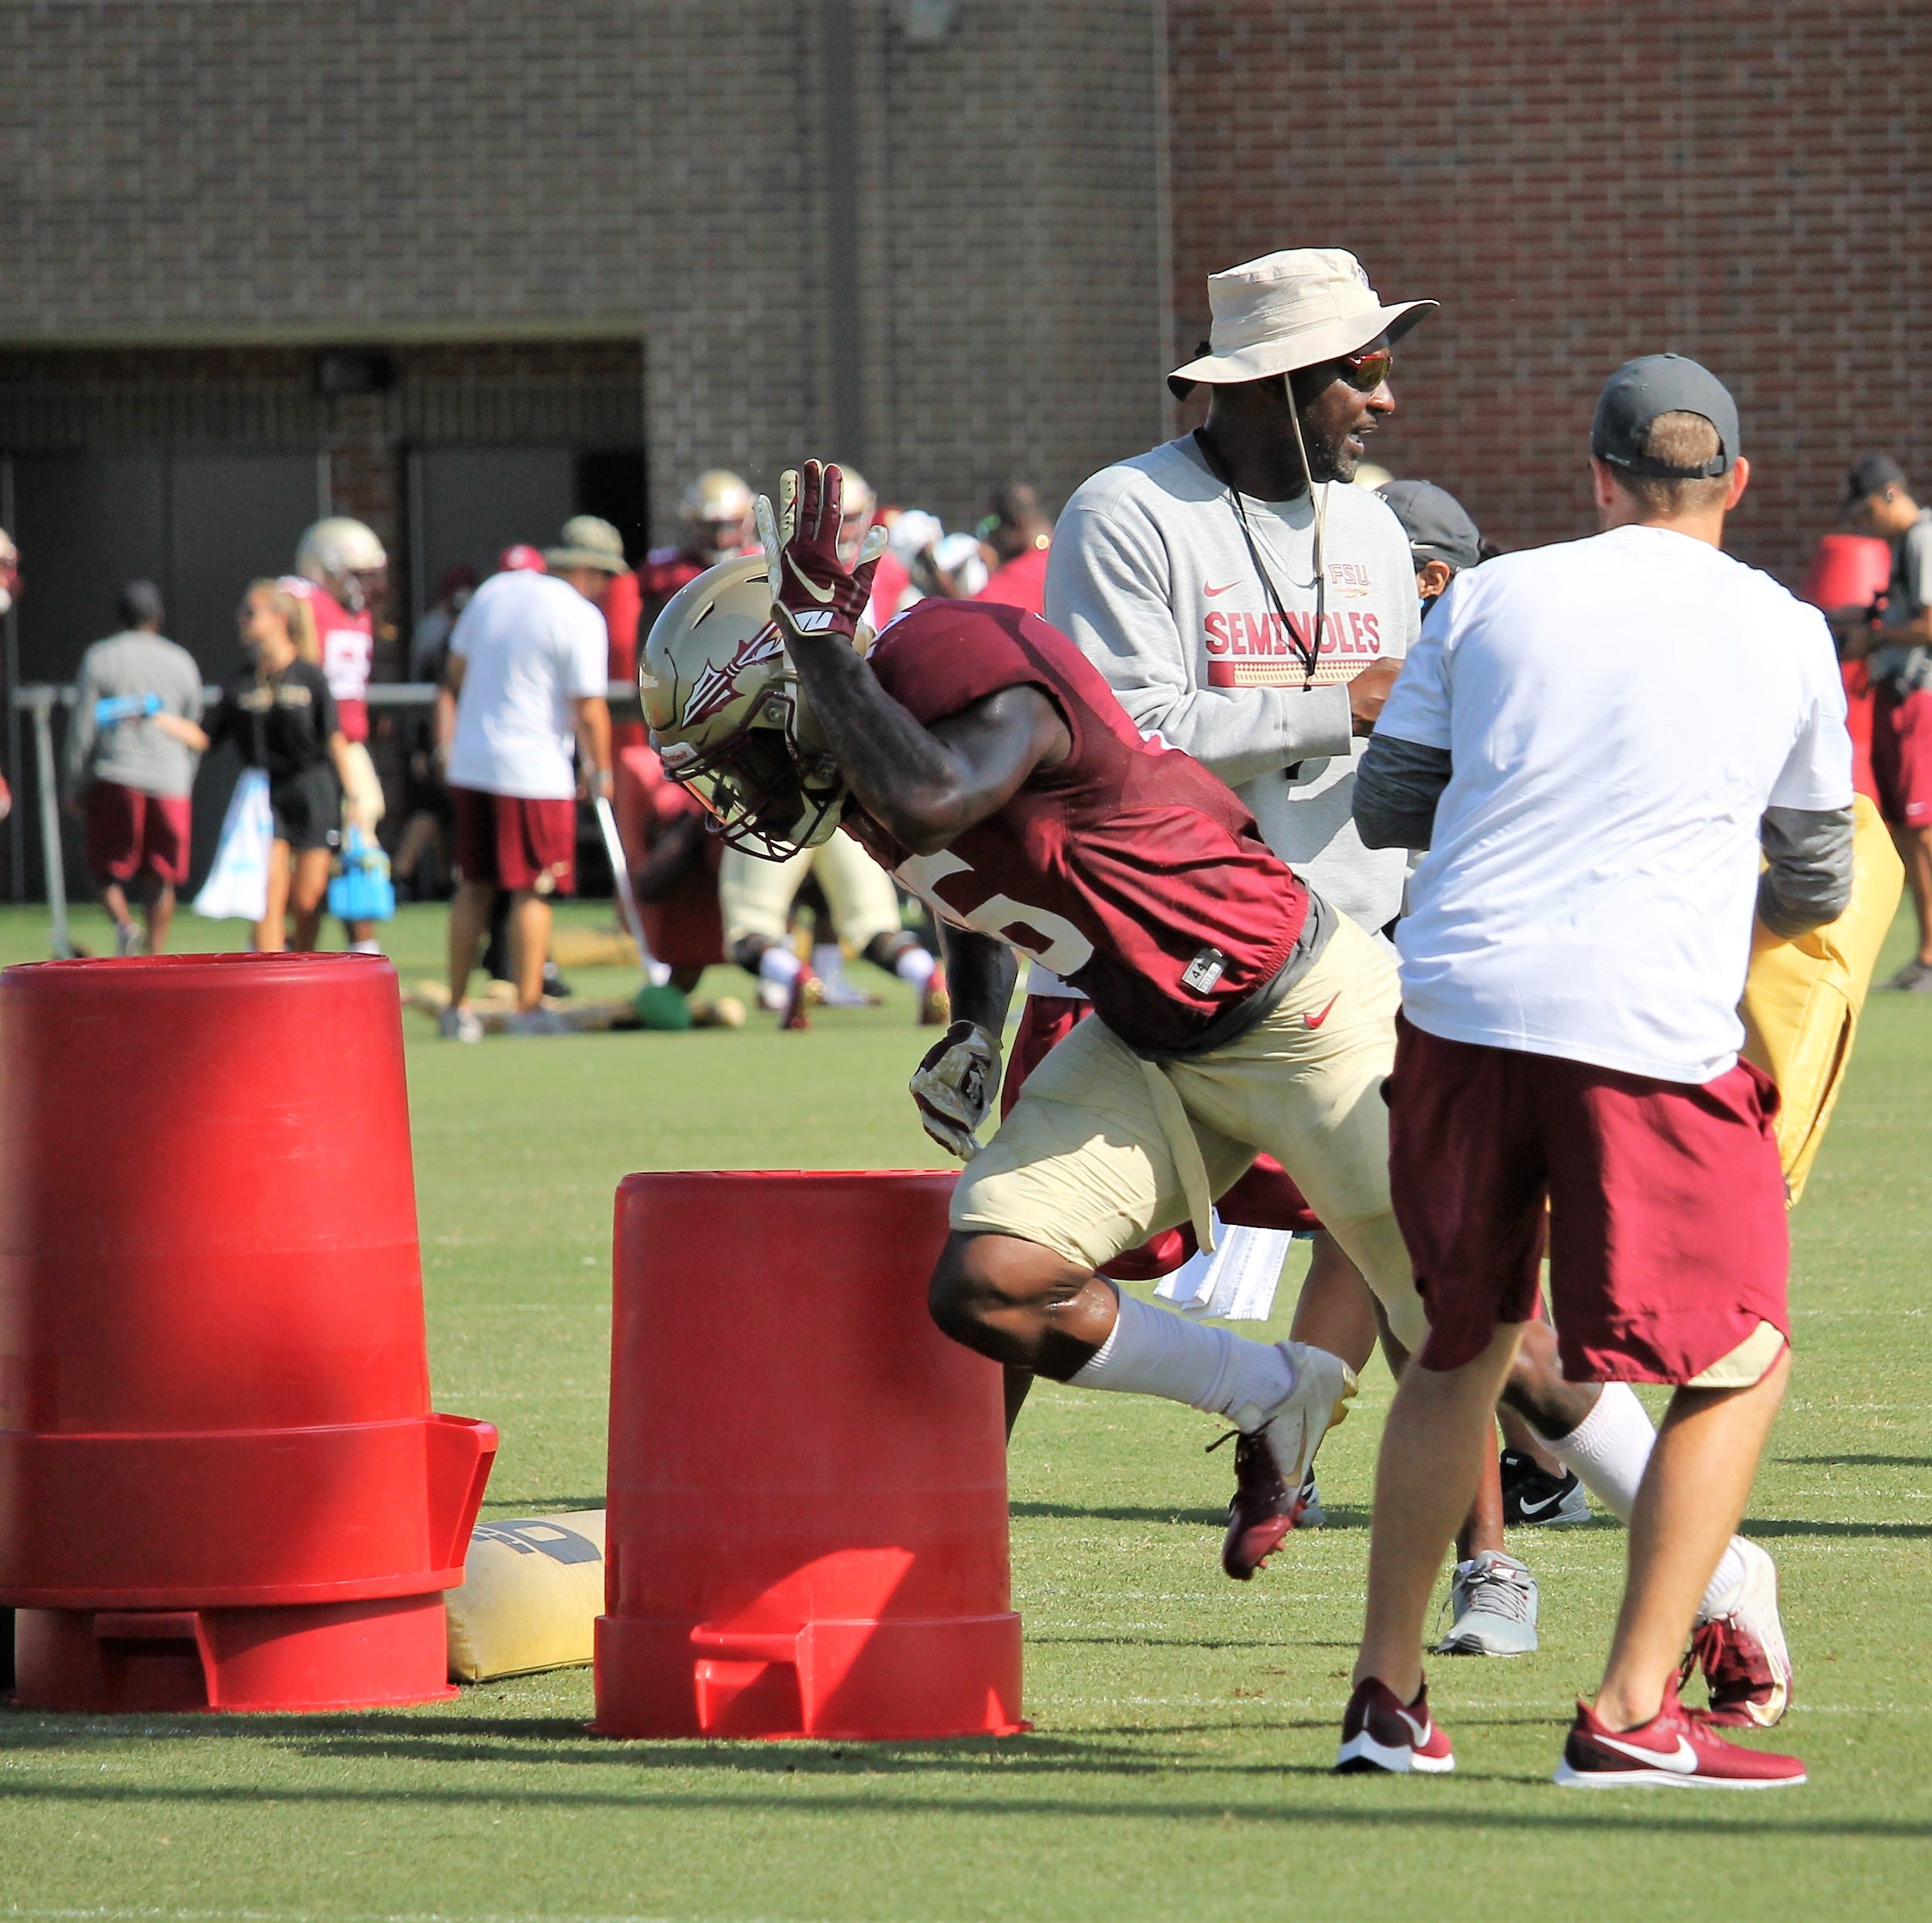 Florida State linebackers combating depth issues with versatility